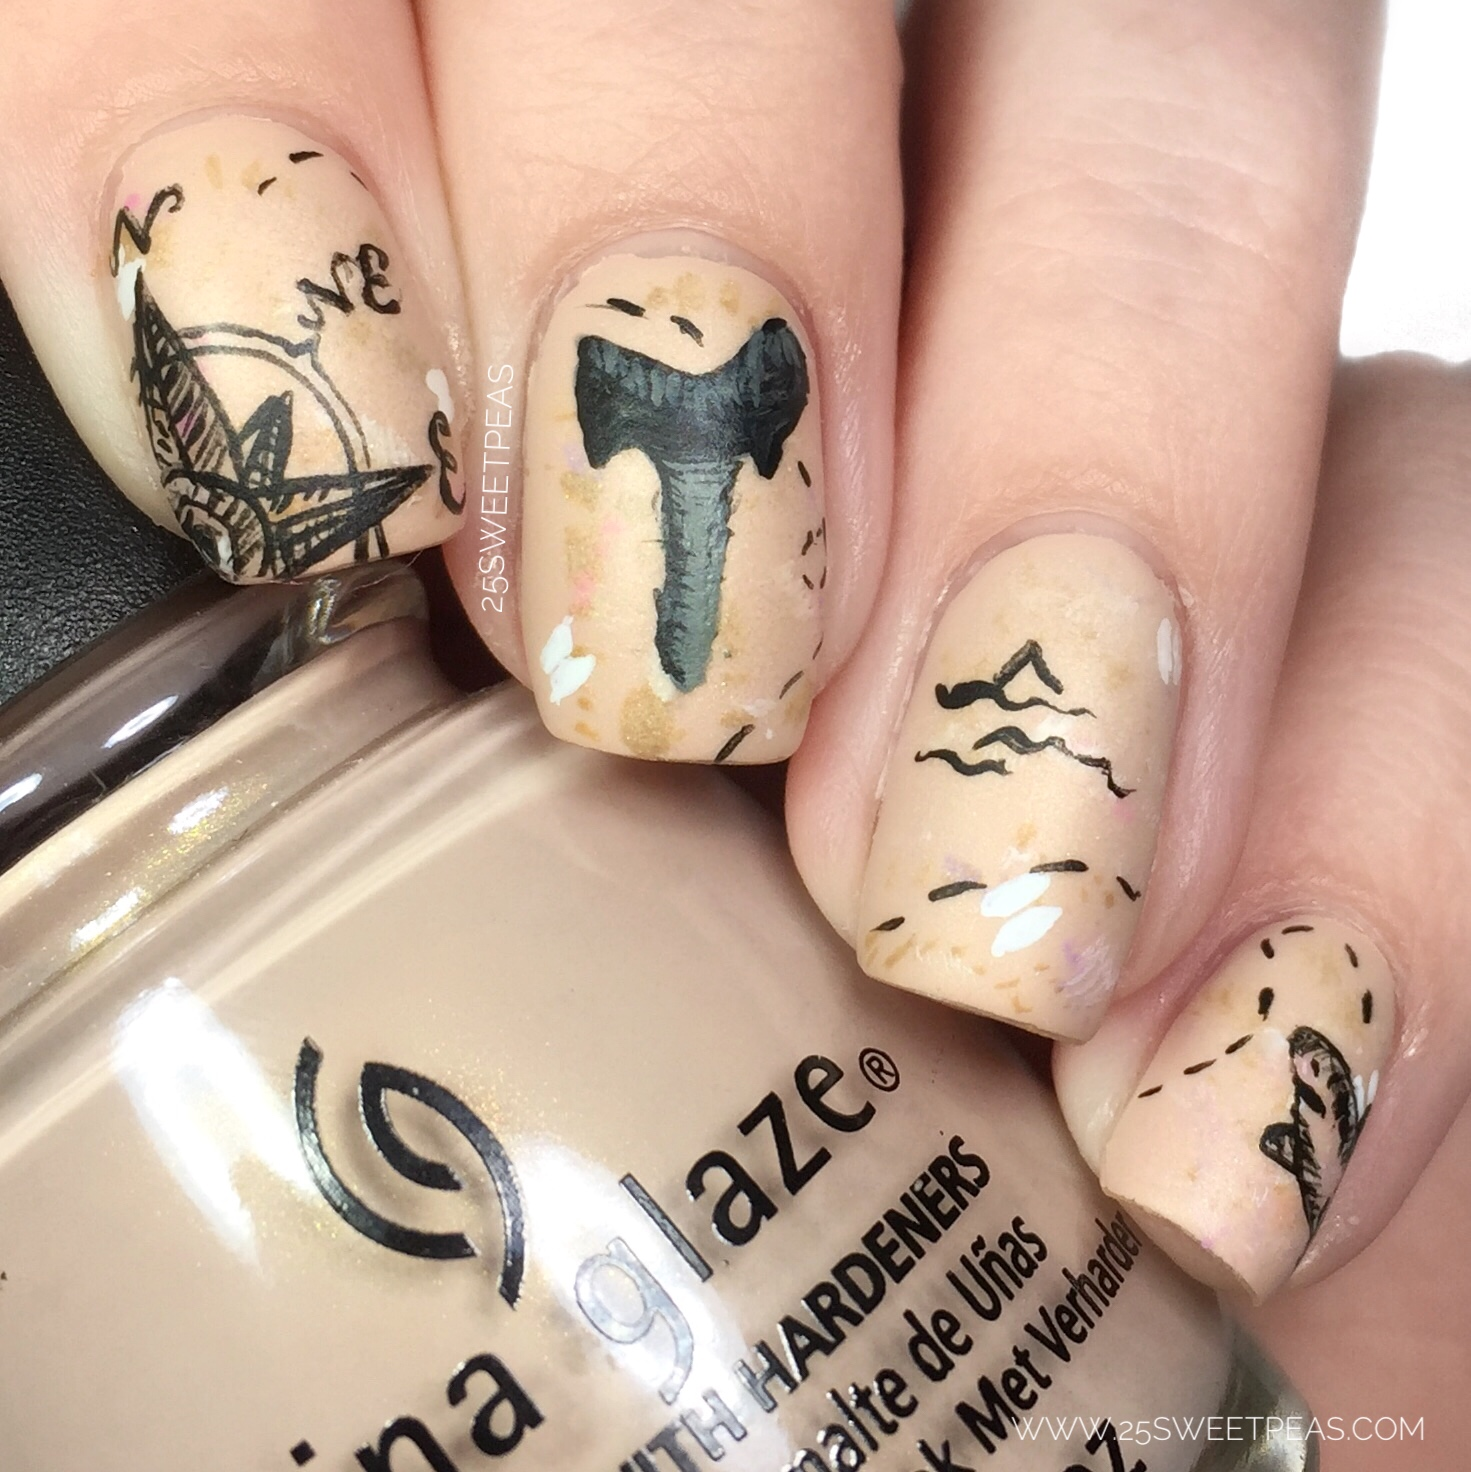 All Of Todays Manis Are Actually Inspired By Real Shark Teeth I Found On The Beach Funny Story When We First Moved To This Area Couldn T Find Any